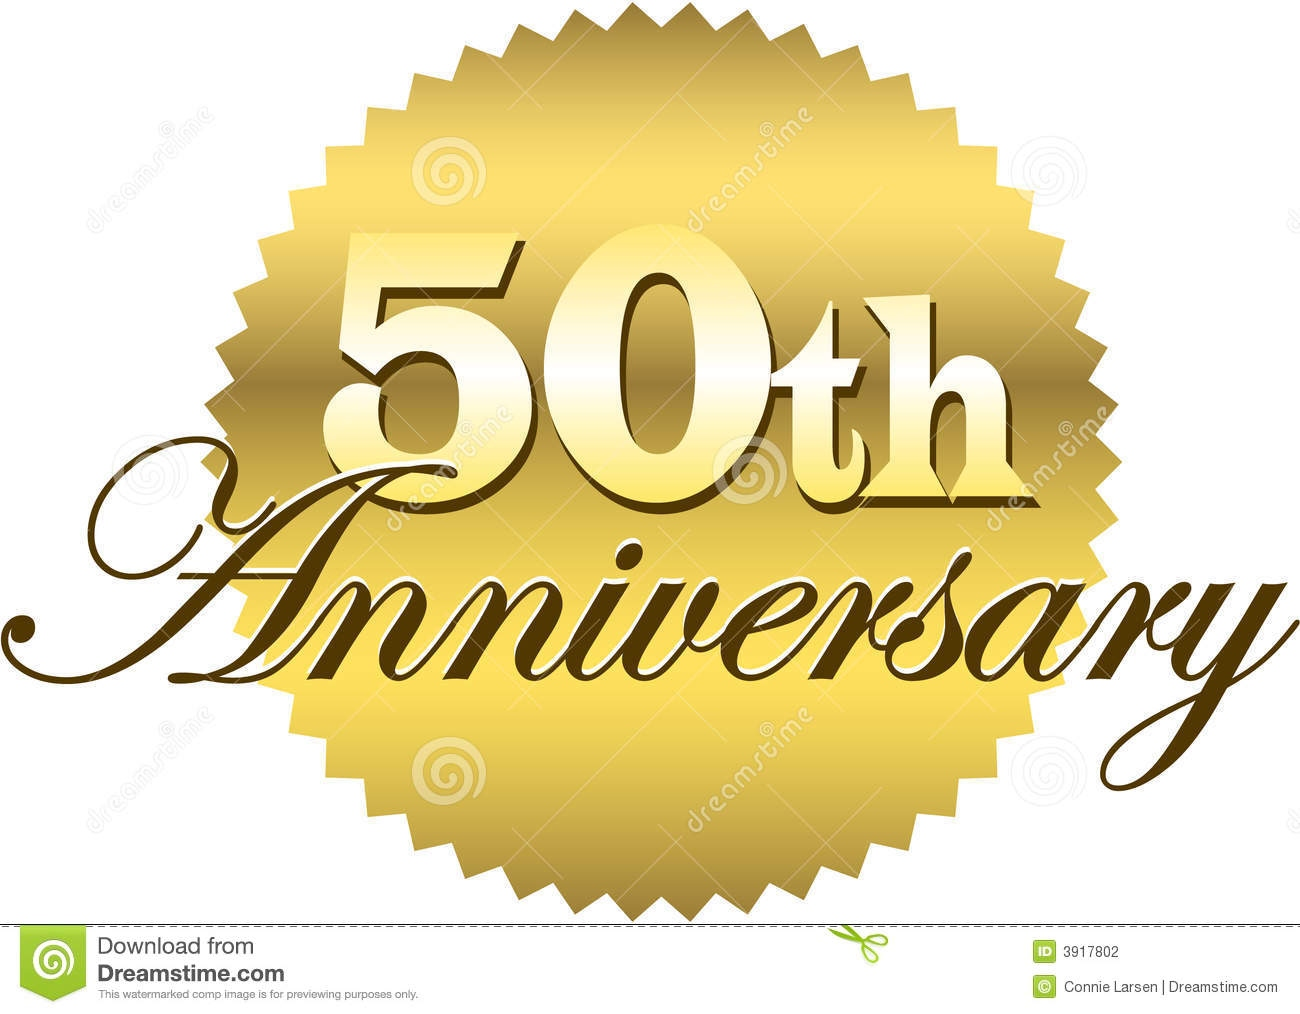 50th wedding anniversary logo ideas Inspirational Golden.